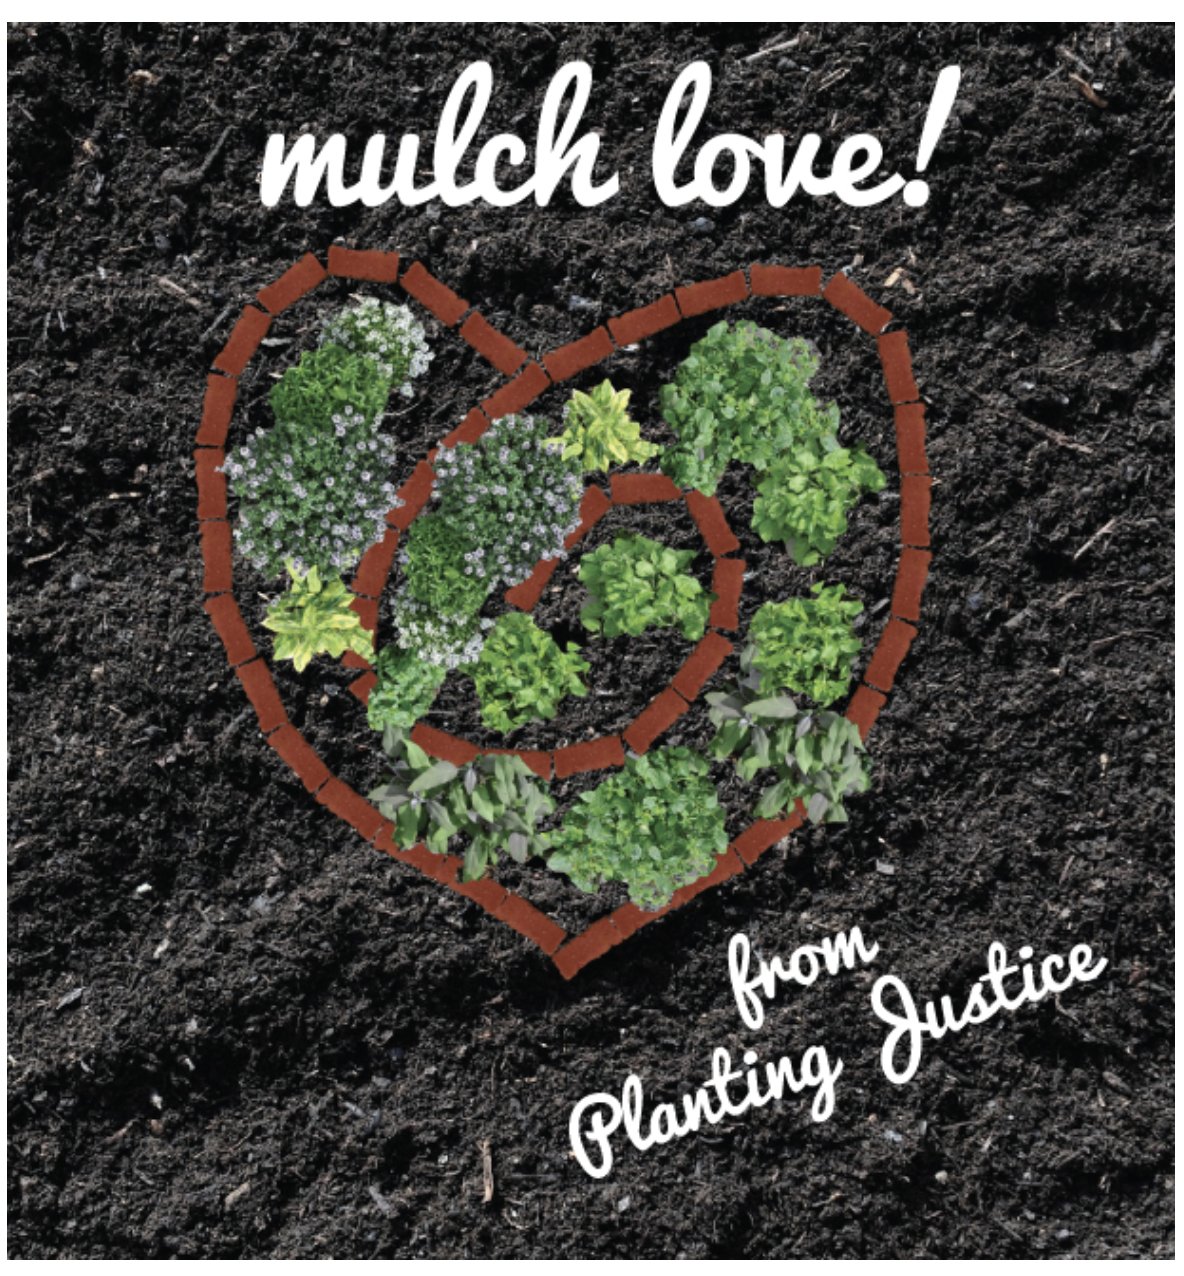 Want to work with Planting Justice? image asset